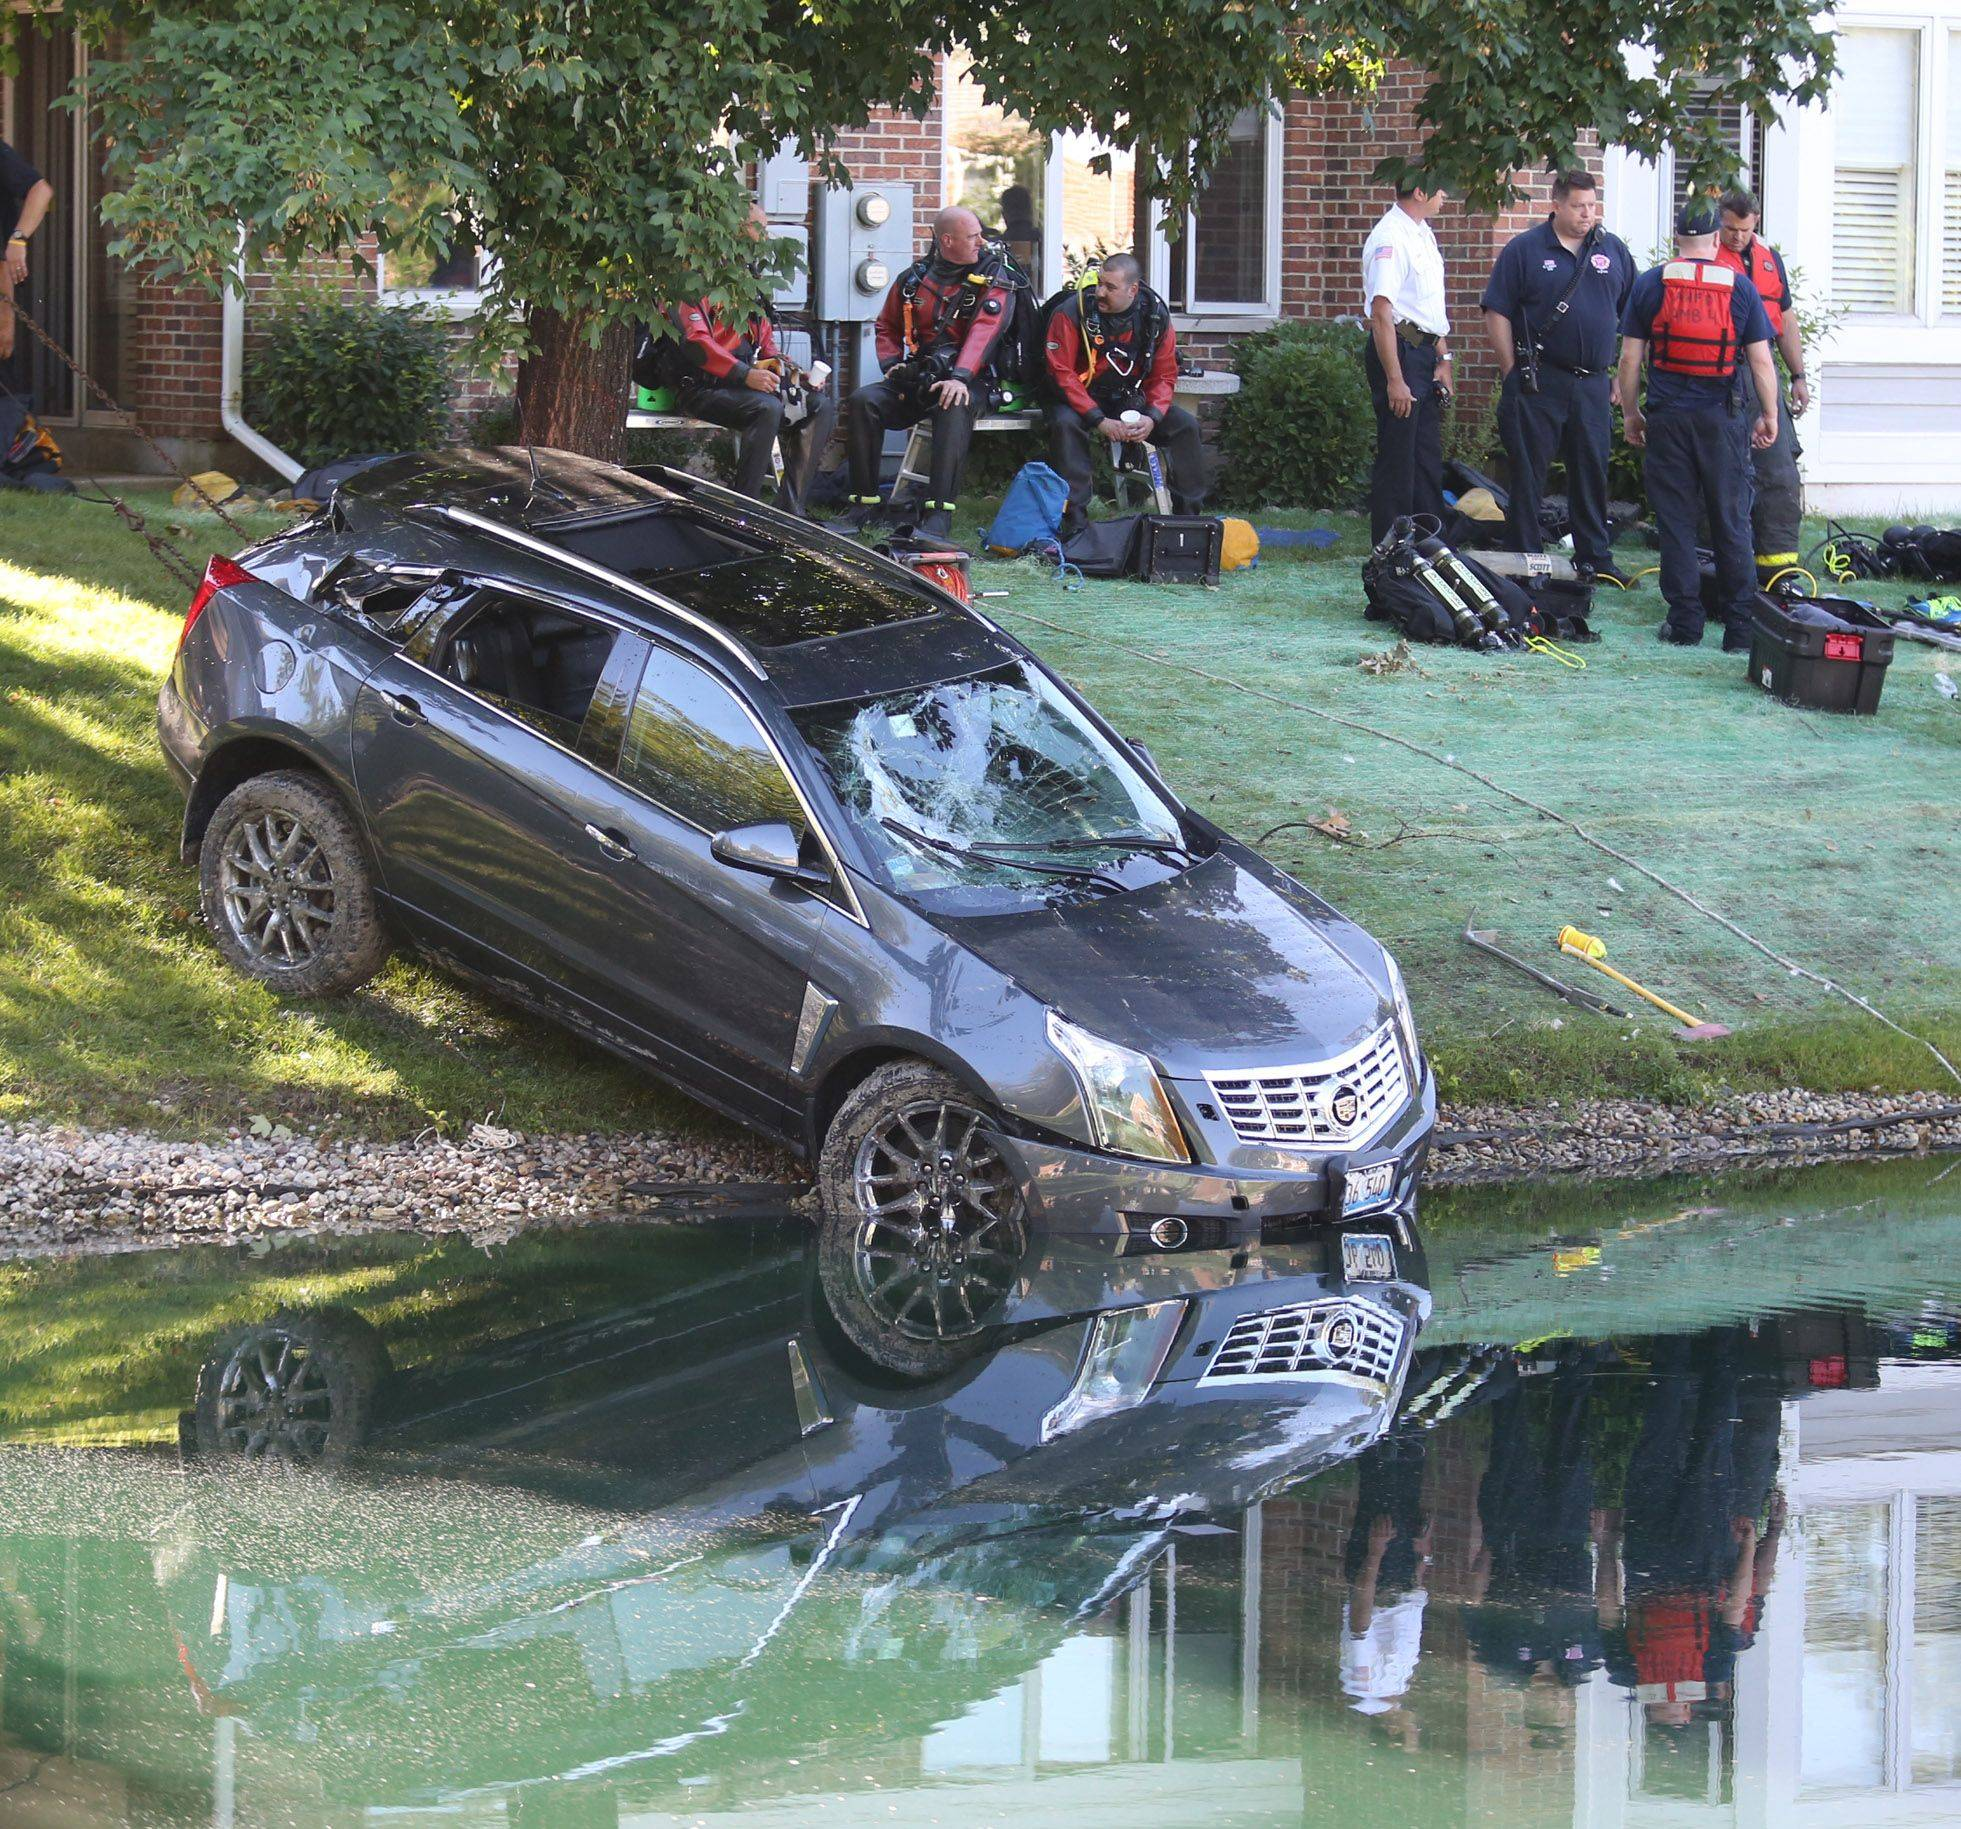 Northwest Central Dispatch is investigating whether dispatchers properly handled 911 calls made Thursday morning after an Arlington Heights man accidentally drove his vehicle into a pond near his home. The driver, 89-year-old Henry Laseke, later died.